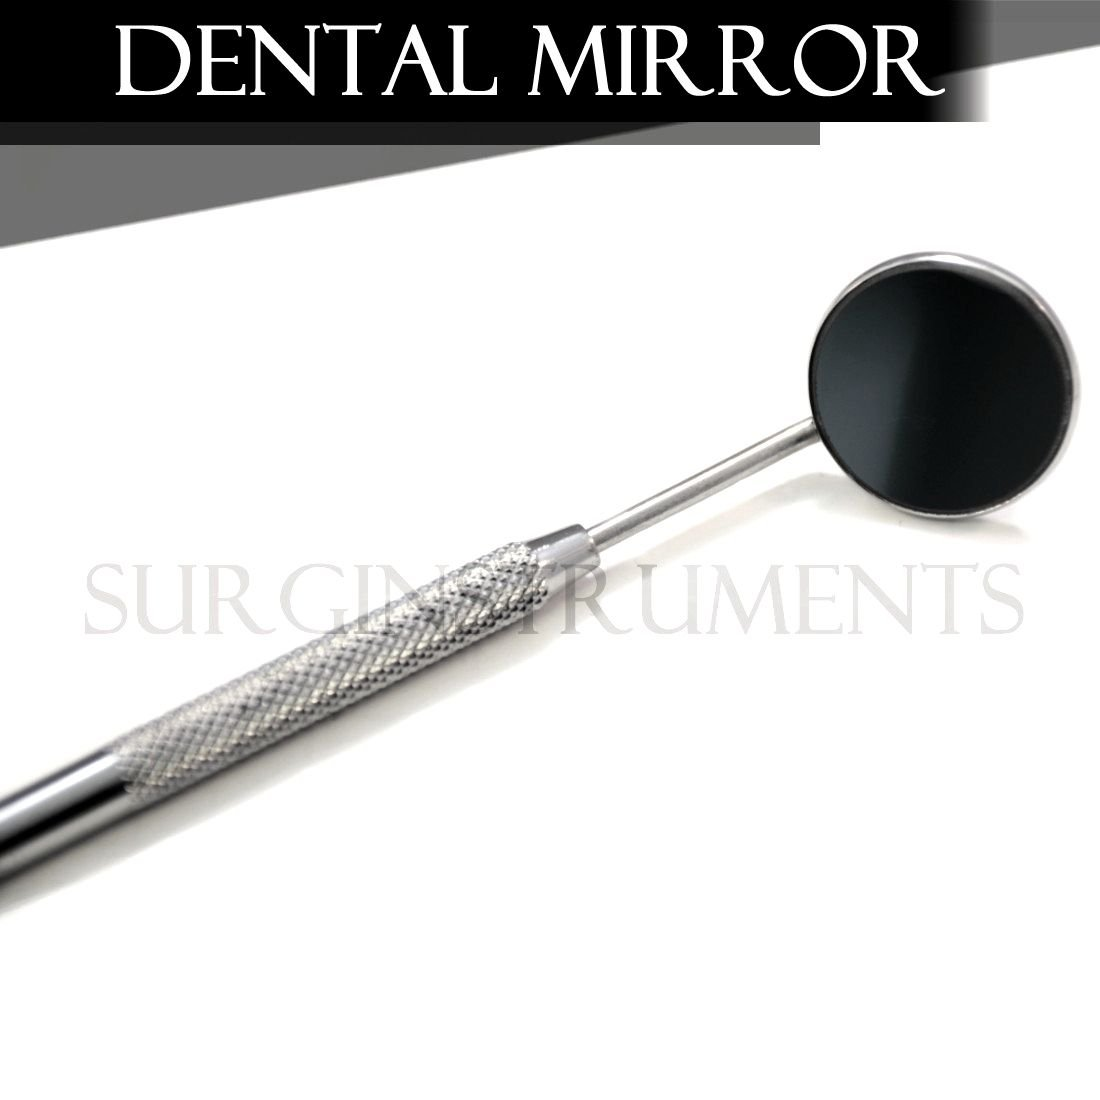 Max 86% OFF Sale item 25 Dental Mirrors Stainless Surgical Steel Instruments